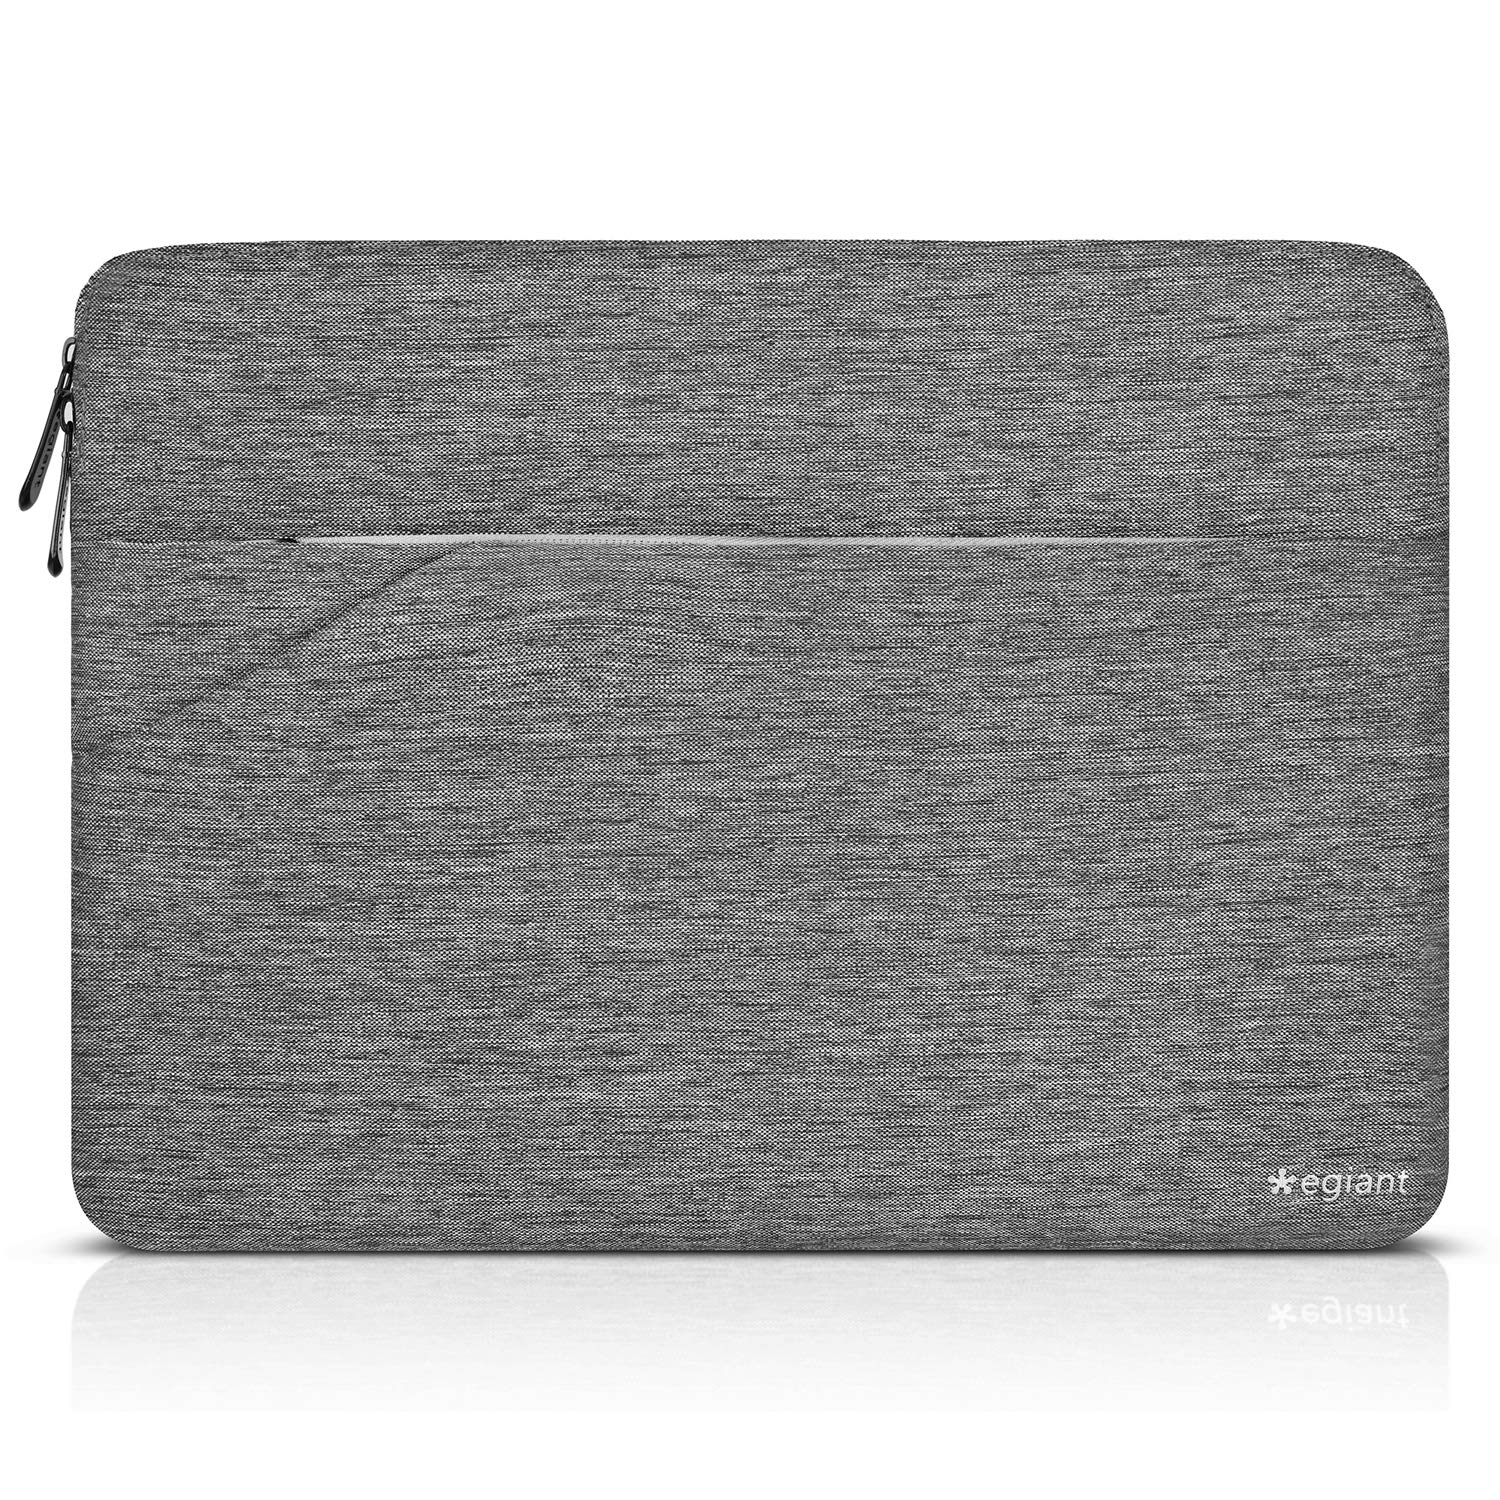 Egiant Laptop Sleeve 11.6 Inch,Protective Case Bag Compatible Mac Air 11, MacBook 12, iPad Tablet,Surface Pro 4 5 6, Stream 11,11.6 Inch Chromebook R11, Water-resistant Notebook Cover-Slim Design,Gray